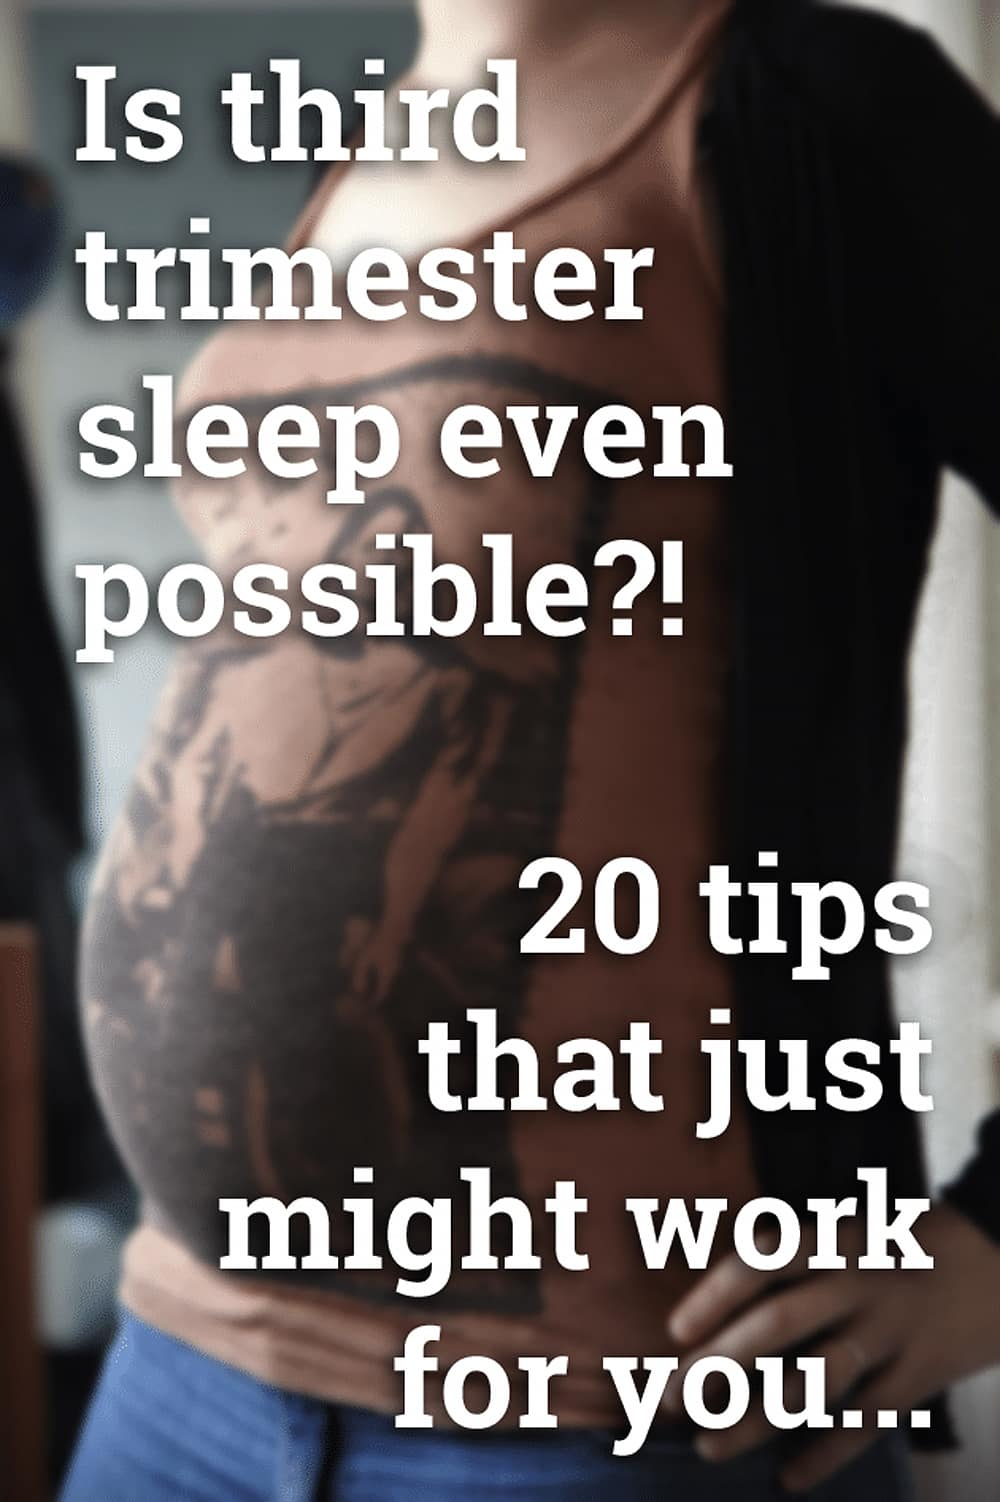 Is third trimester sleep even possible?! 20 tips